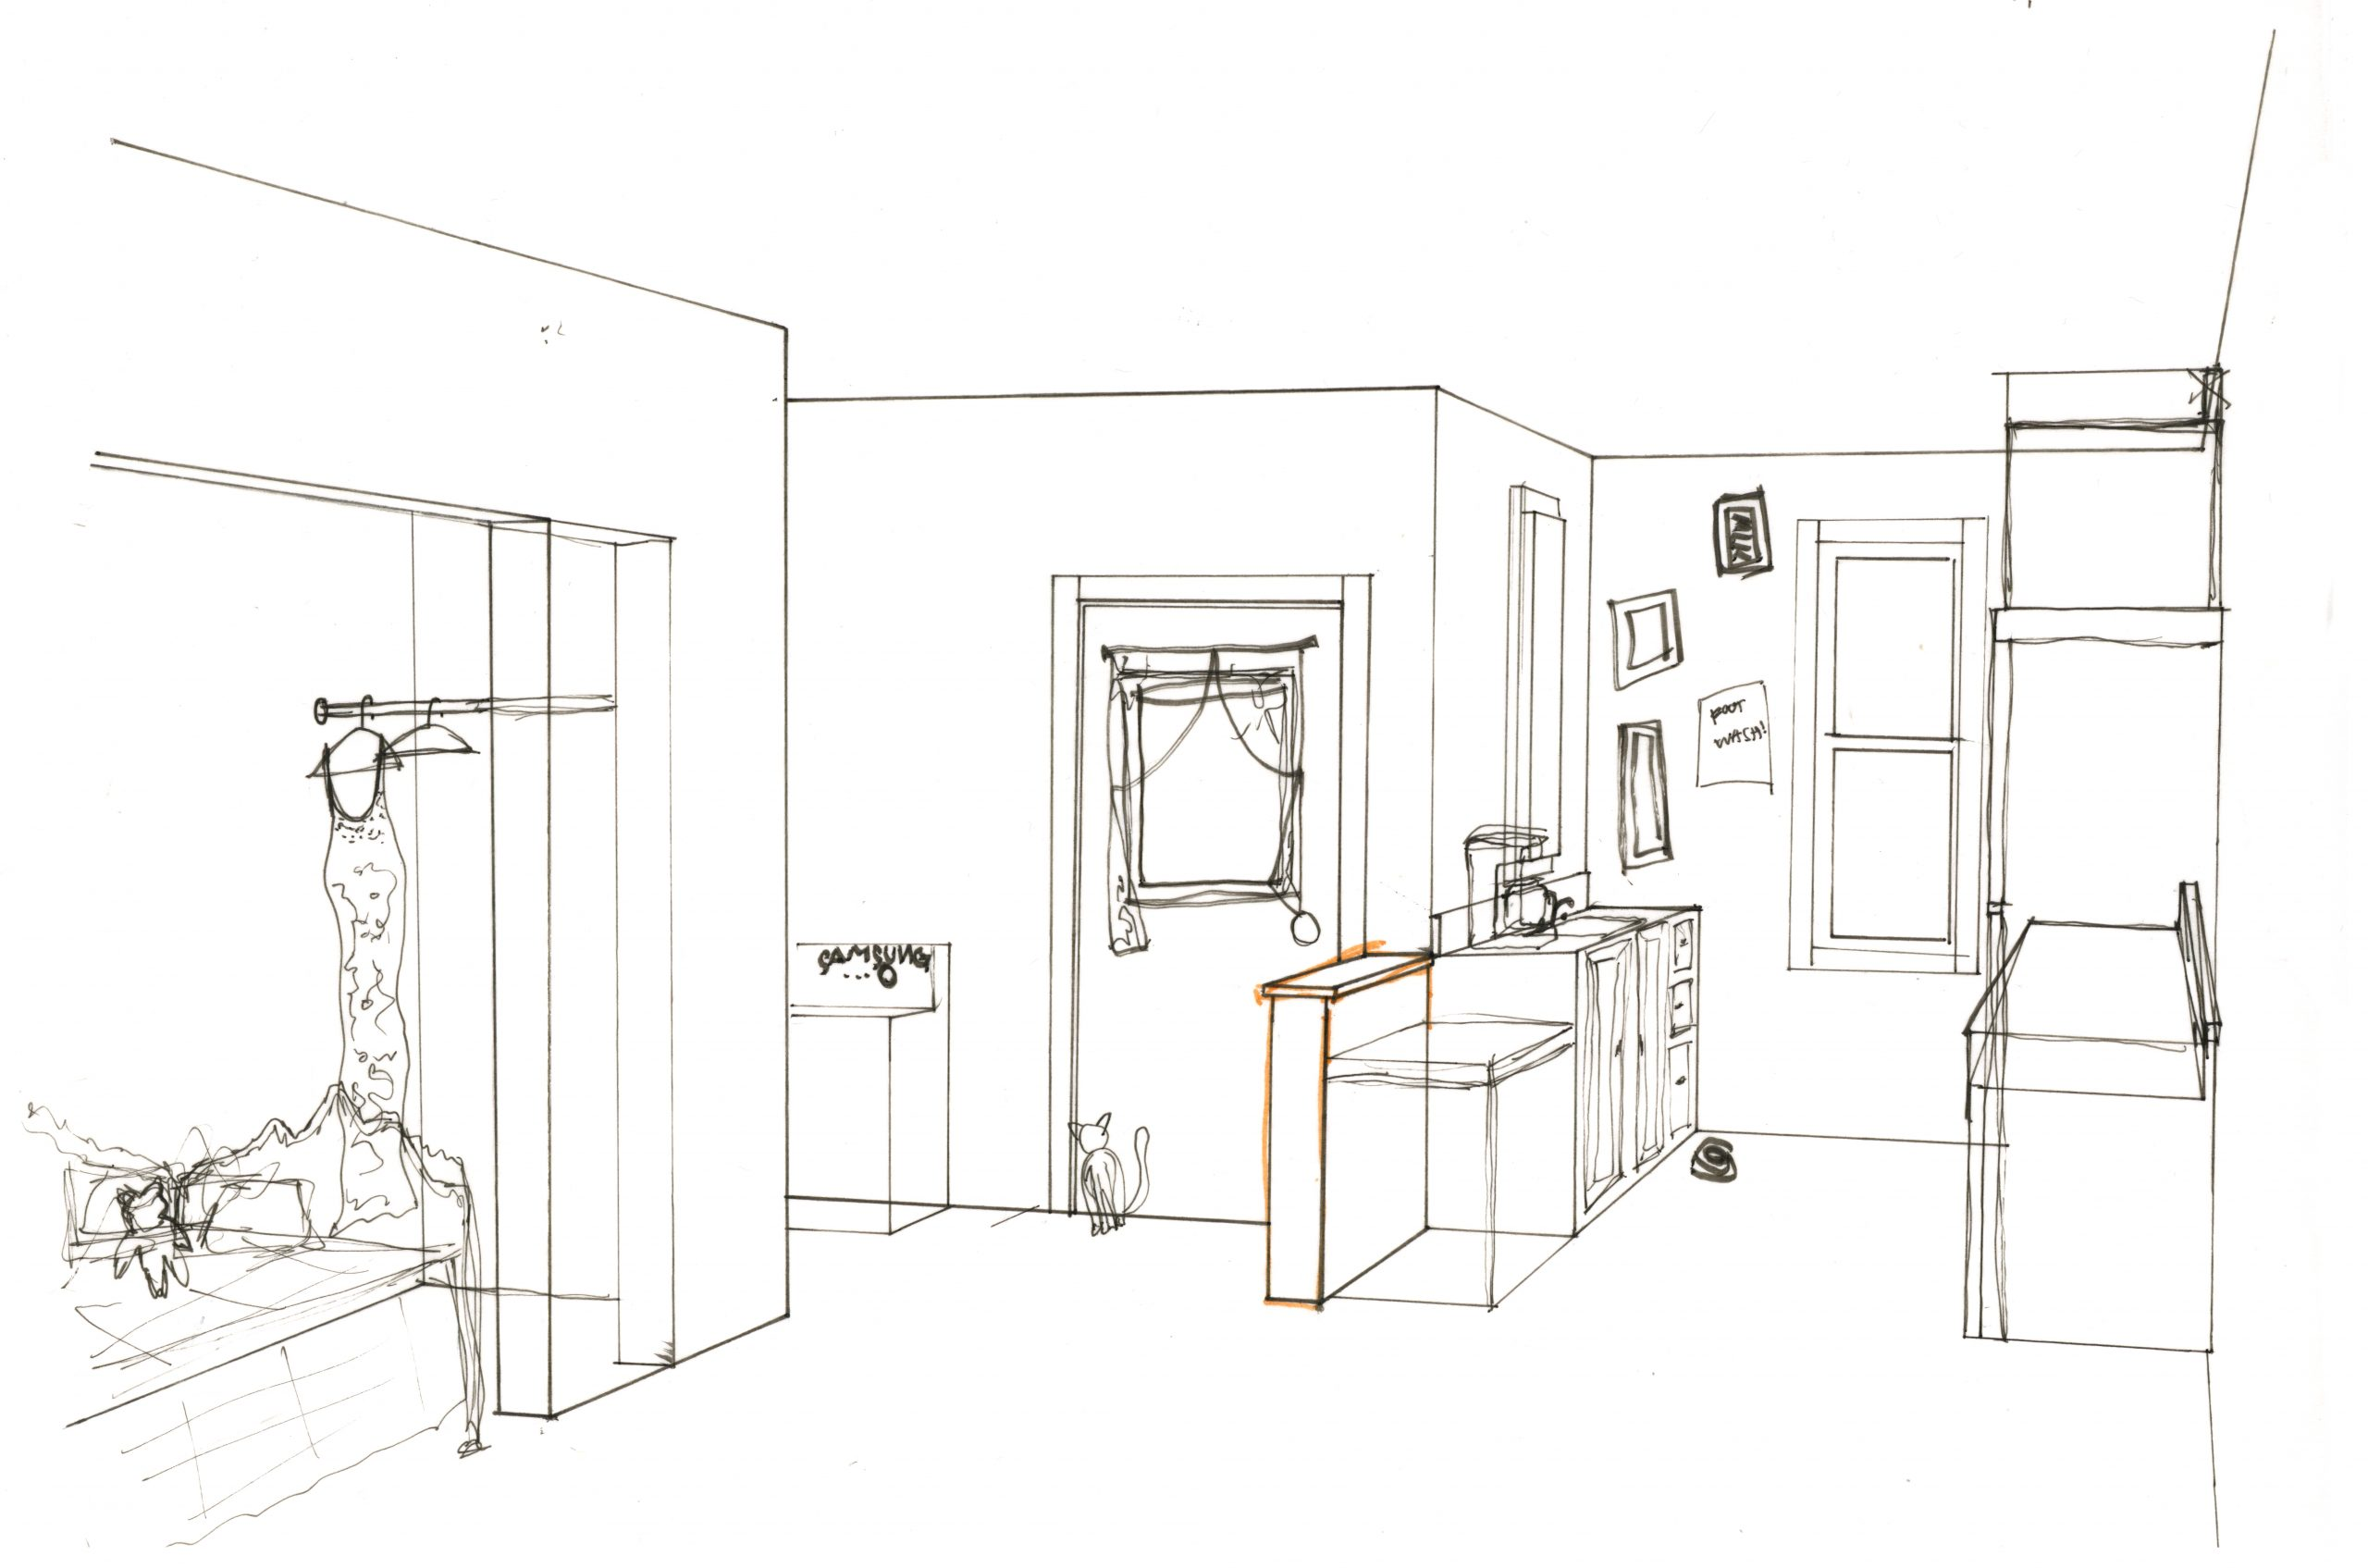 hand-drawn interior sketch of sleeping nook and kitchen